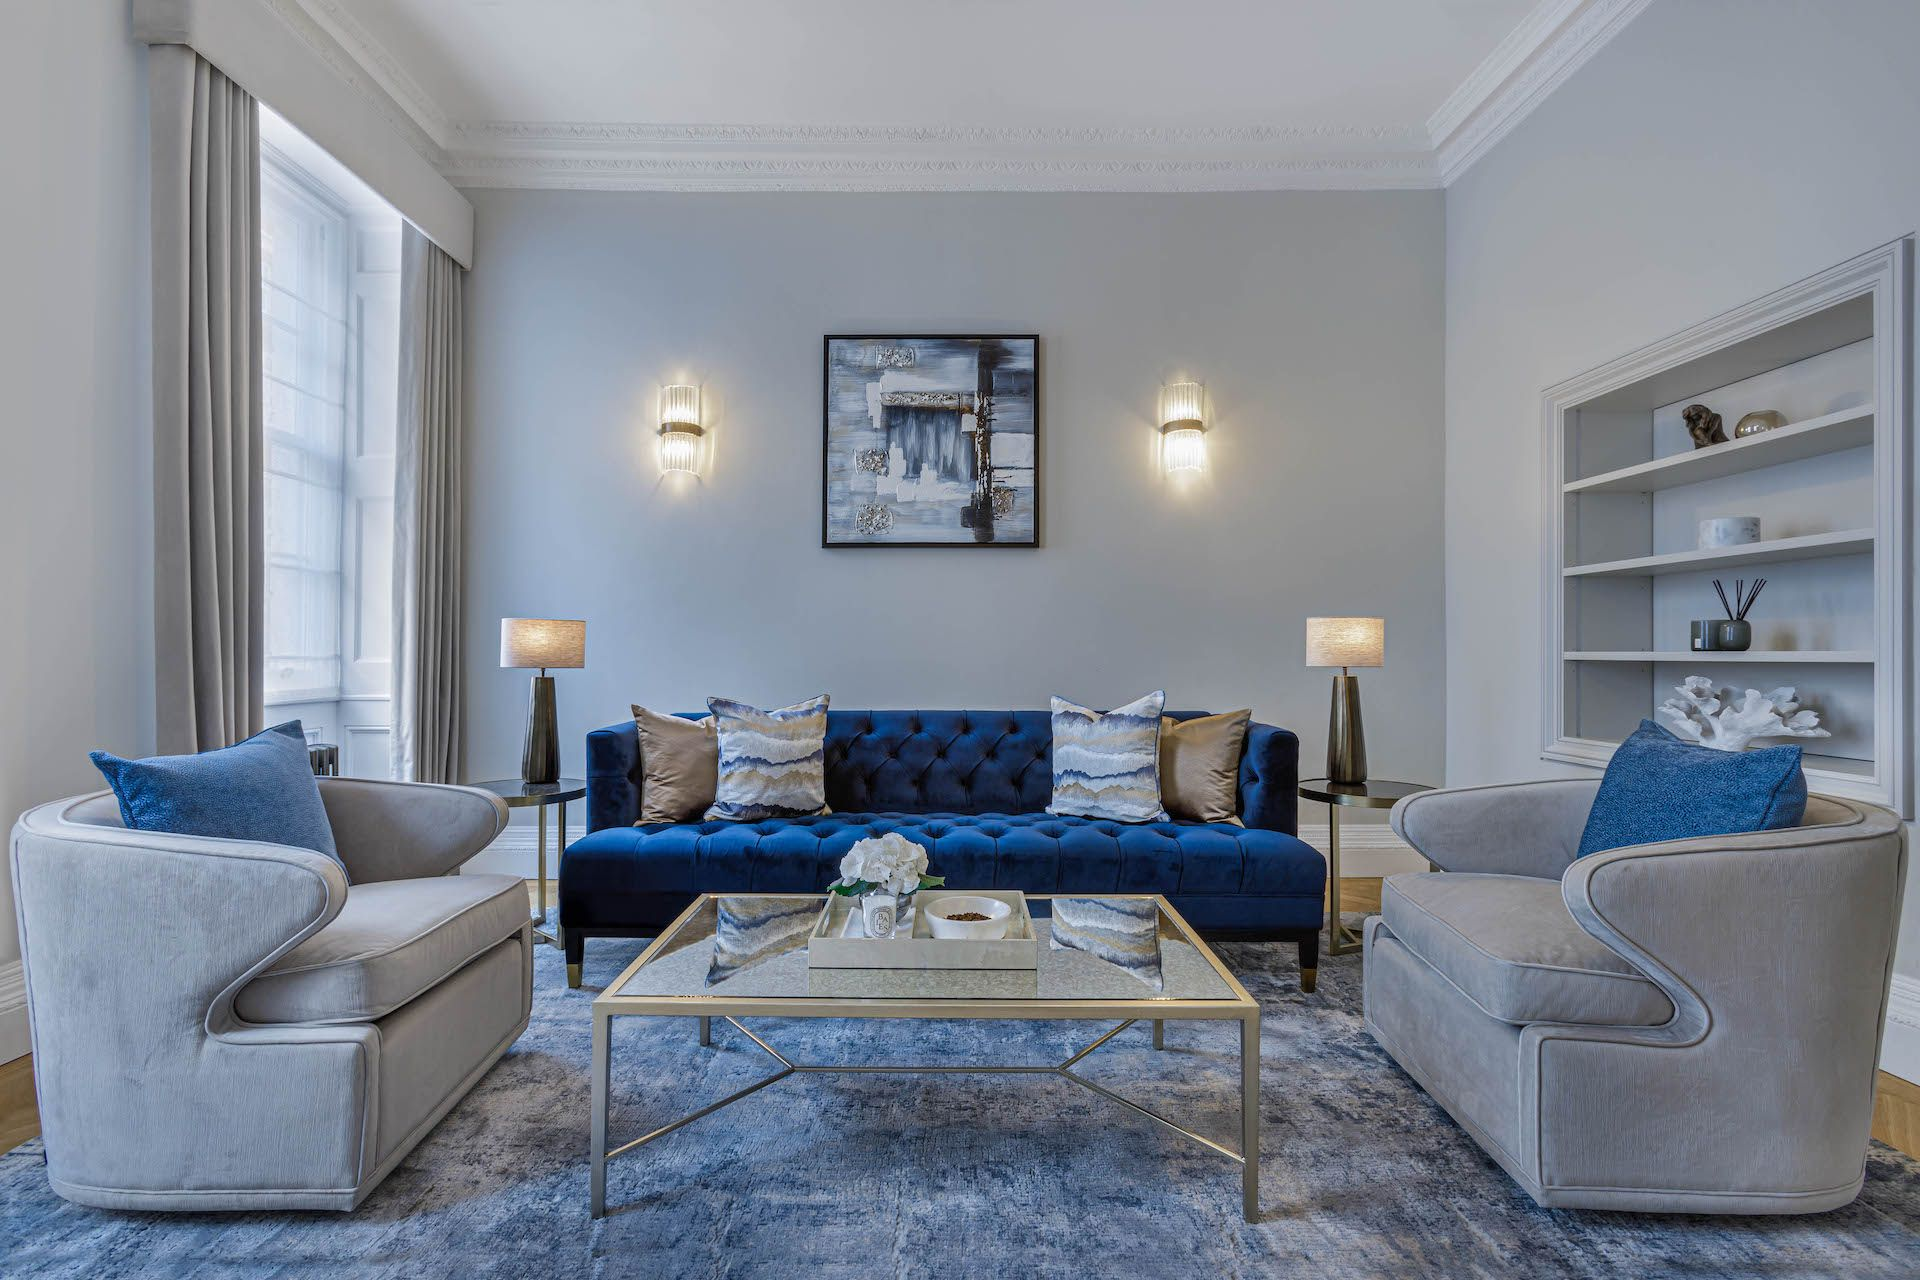 2 Bedroom apartment to rent in London WIM-WI-0003